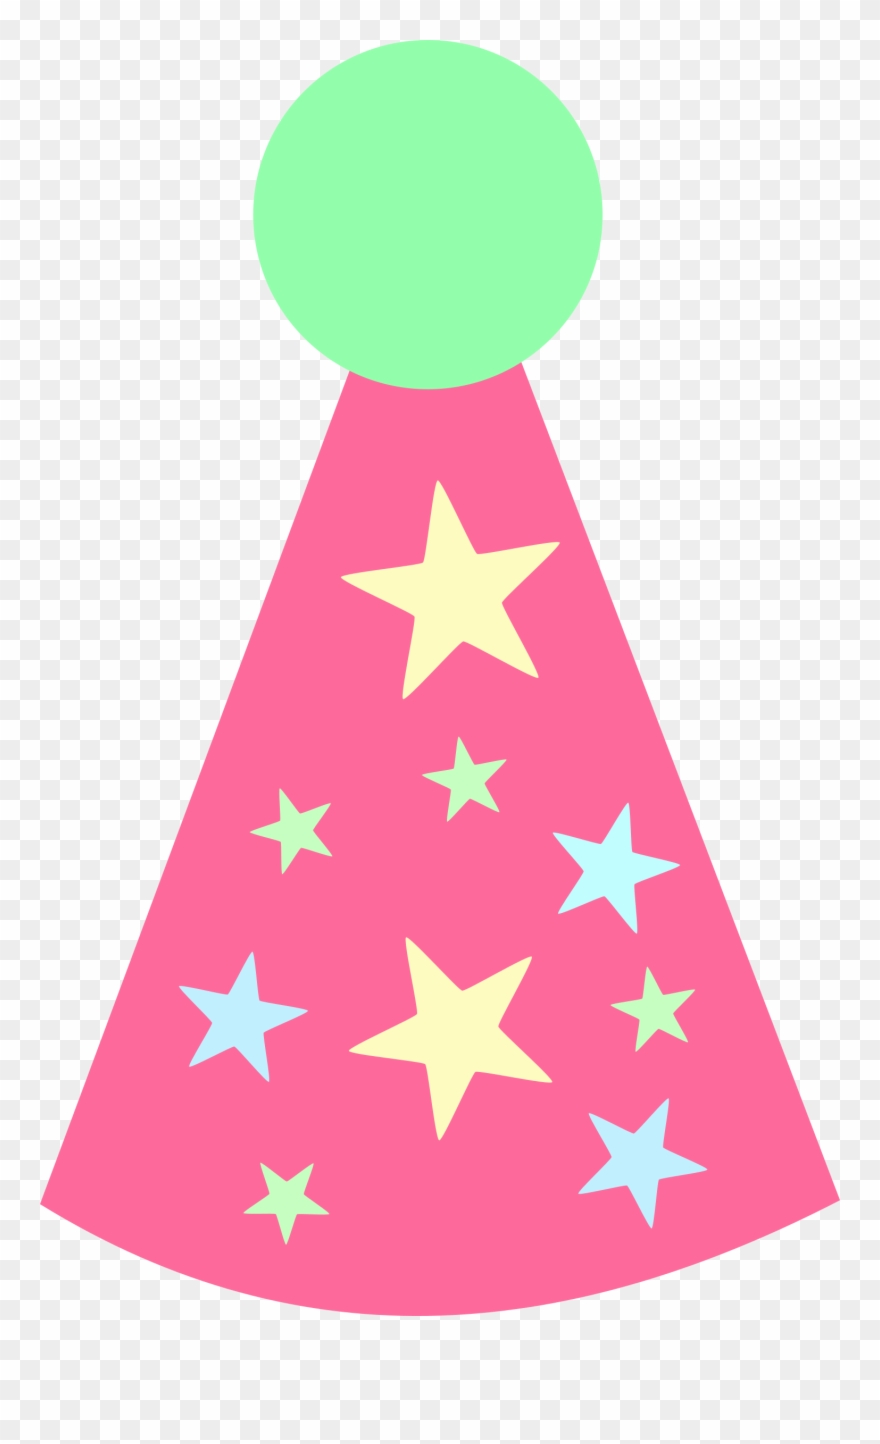 Cartoon birthday hat clipart banner royalty free stock Bright Red Party Big Image Png - Birthday Party Hat Cartoon Clipart ... banner royalty free stock